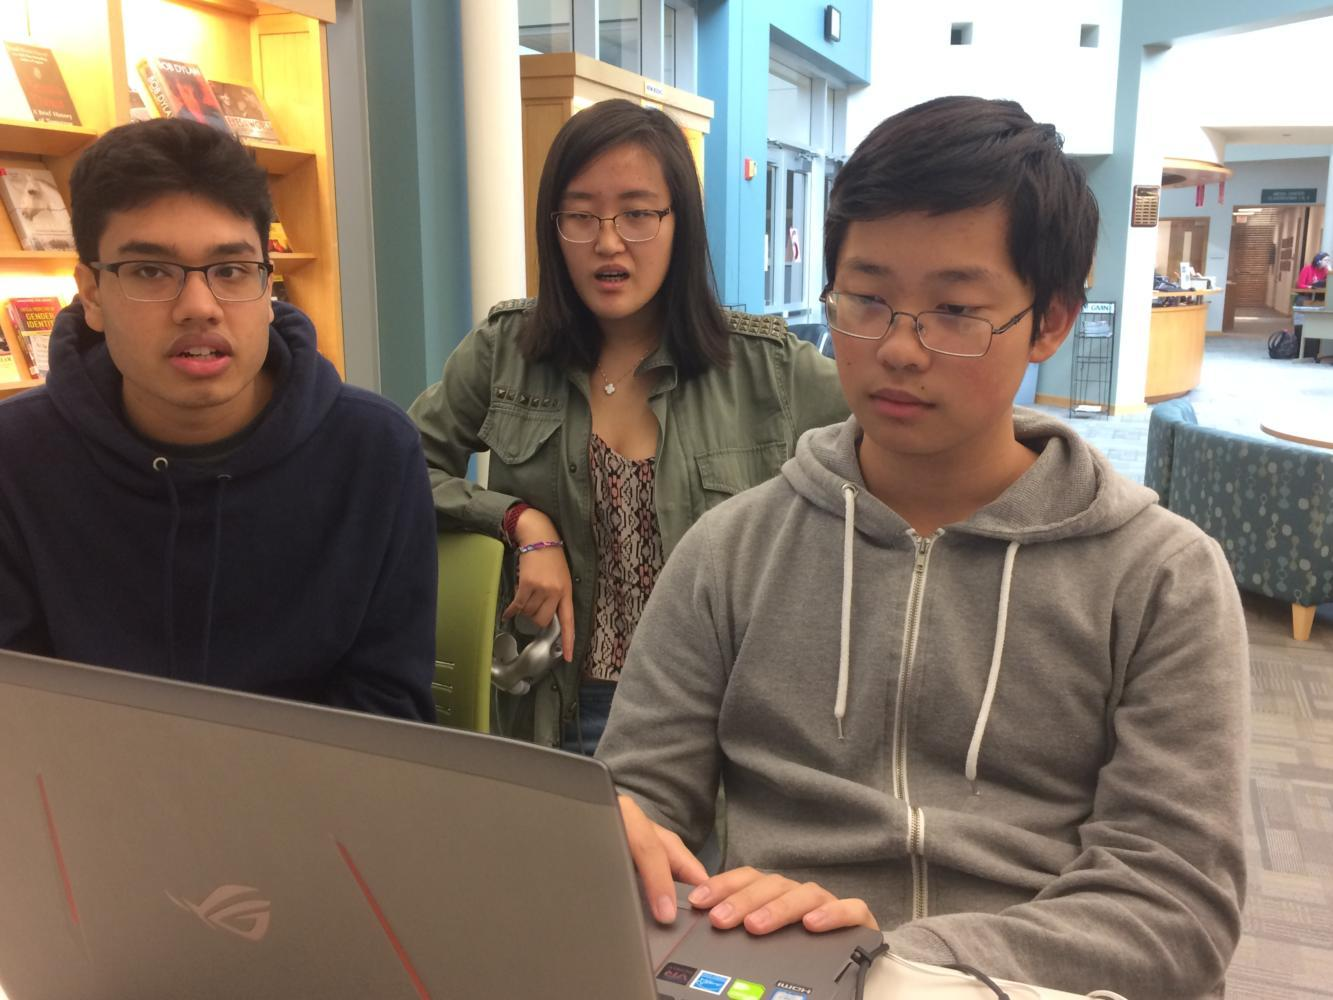 Seniors Aakash Roy, Catherine Qing  and Kevin Chen (left to right) use Canvas to complete their homework during SRT. Chen said although more could be done to improve the integration of Canvas, he prefers it over previous platorms, such as Edmodo and Moodle.